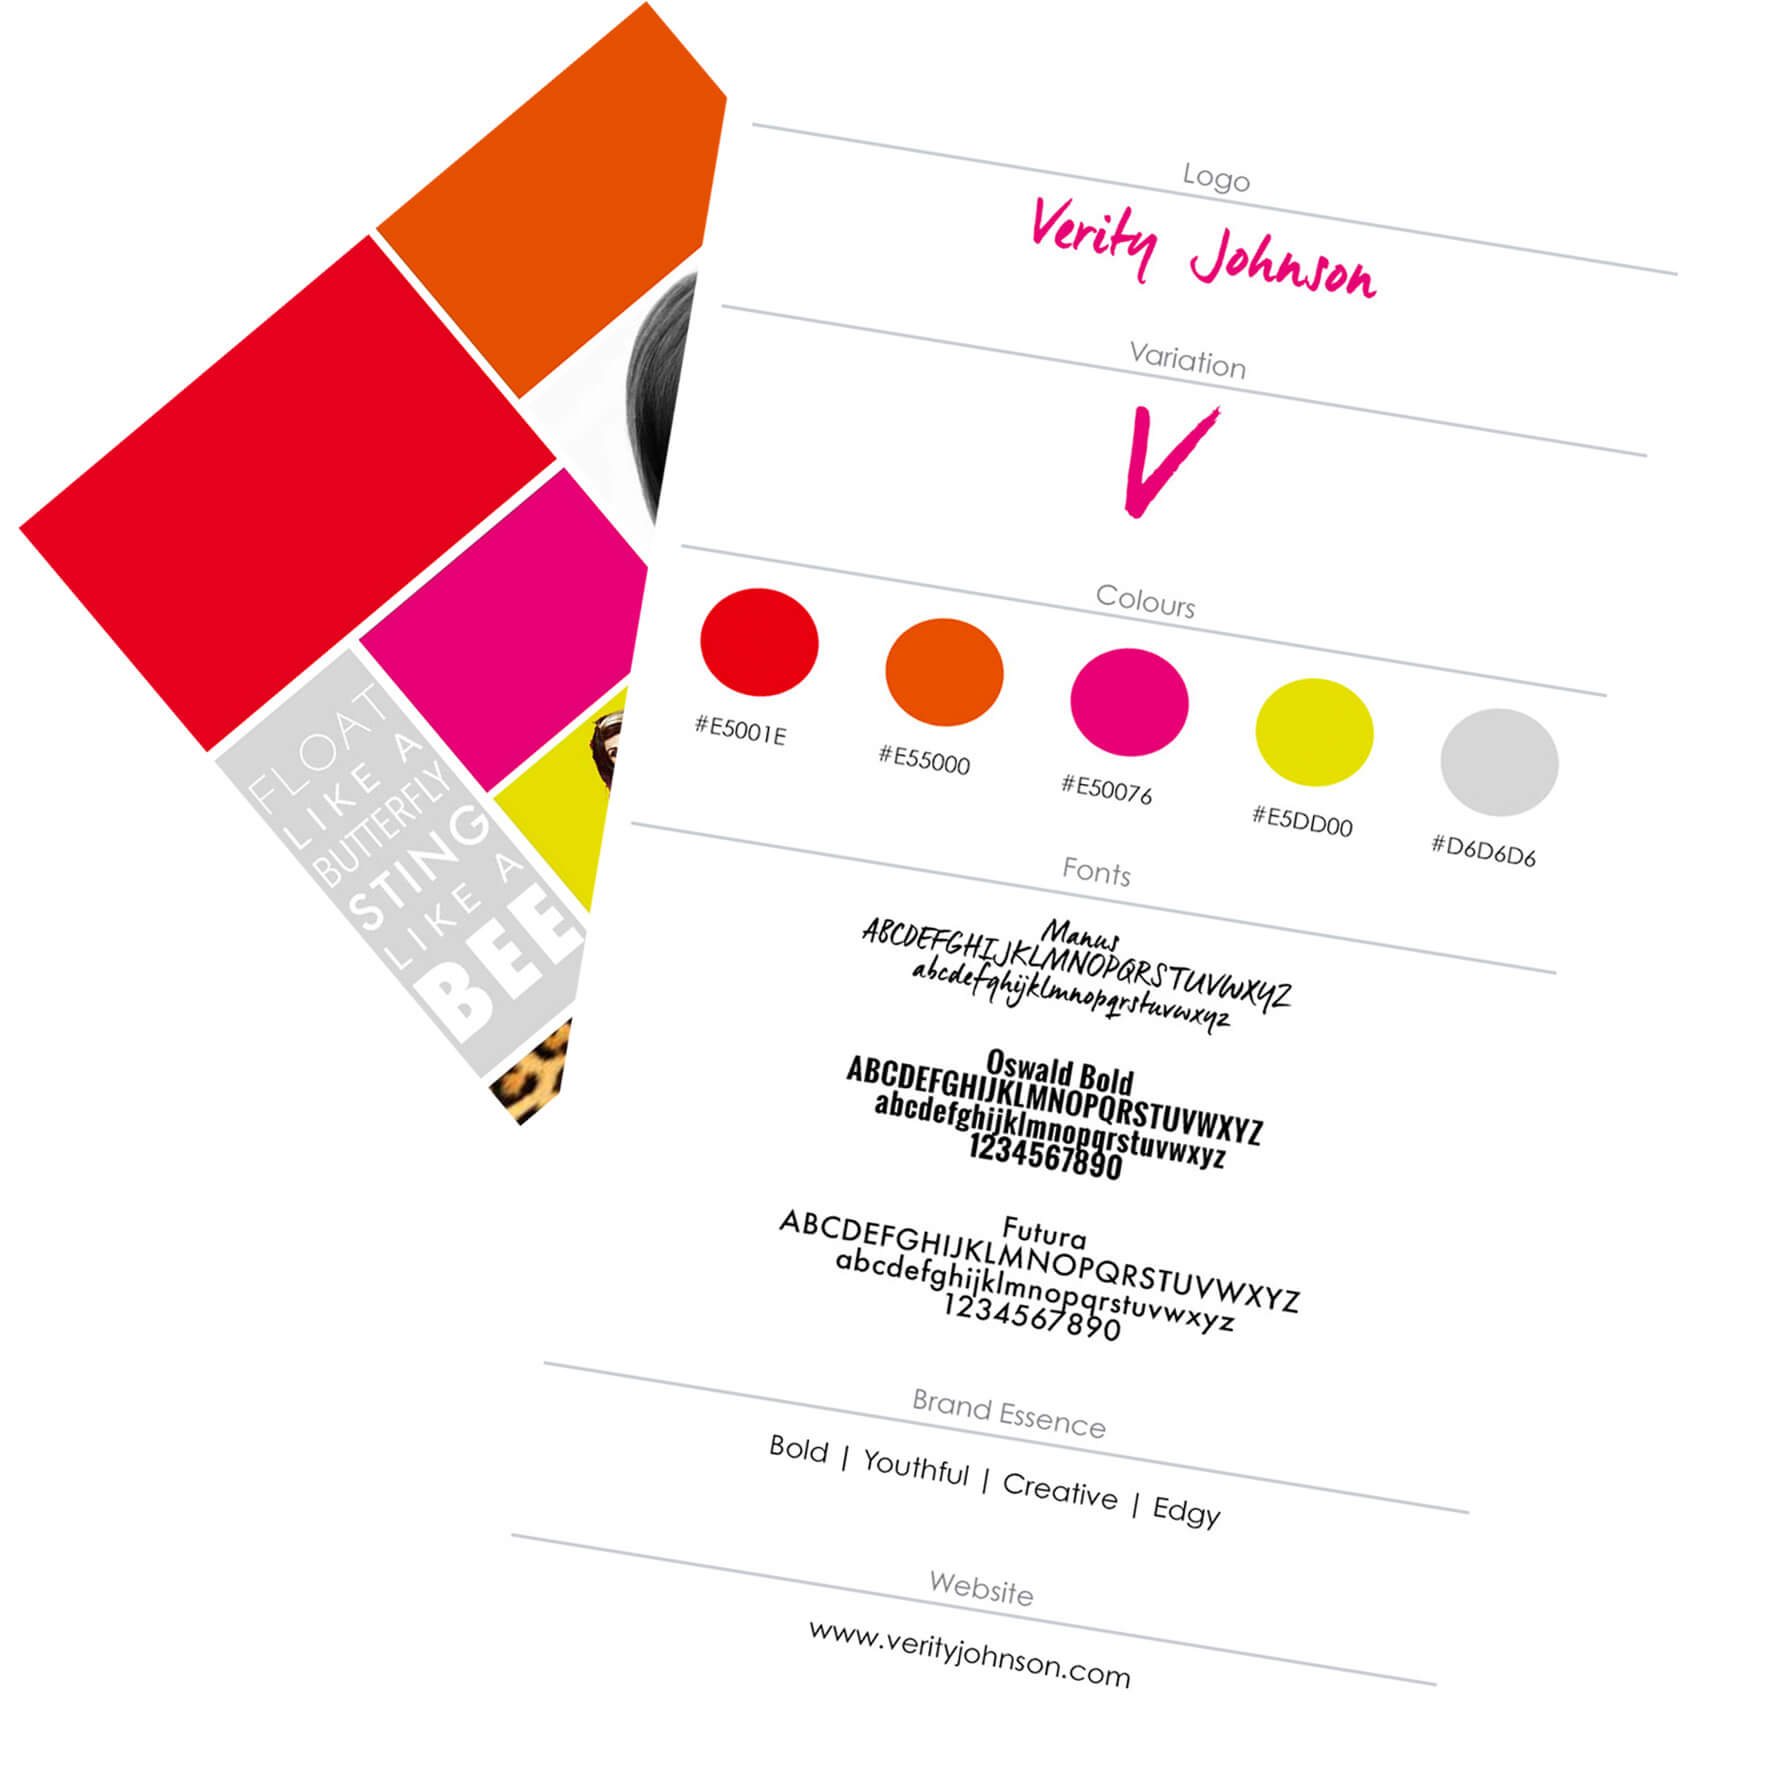 Brand Style - After a thorough review of Verity's unique strengths and values, where she wants to take her career and the competition in her field, we helped her clarify her unique brand essence that would both feel authentic and help her stand out.To capture Verity's brand essence visually,we developed a bold, high energy color palette including animal print patterns, along with modern sans serif fonts and an artistic script logo.